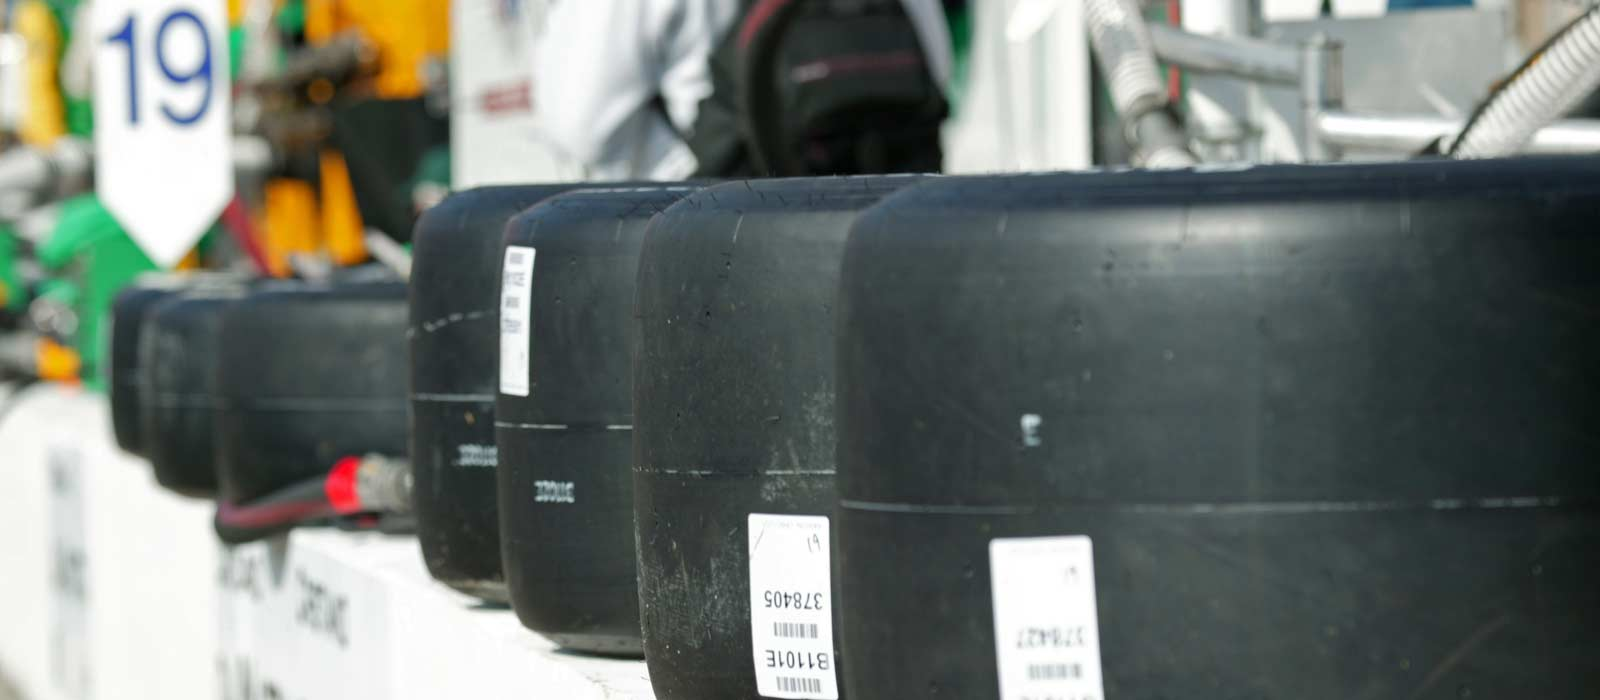 Racecar tires lined up on wall at racetrack near campus